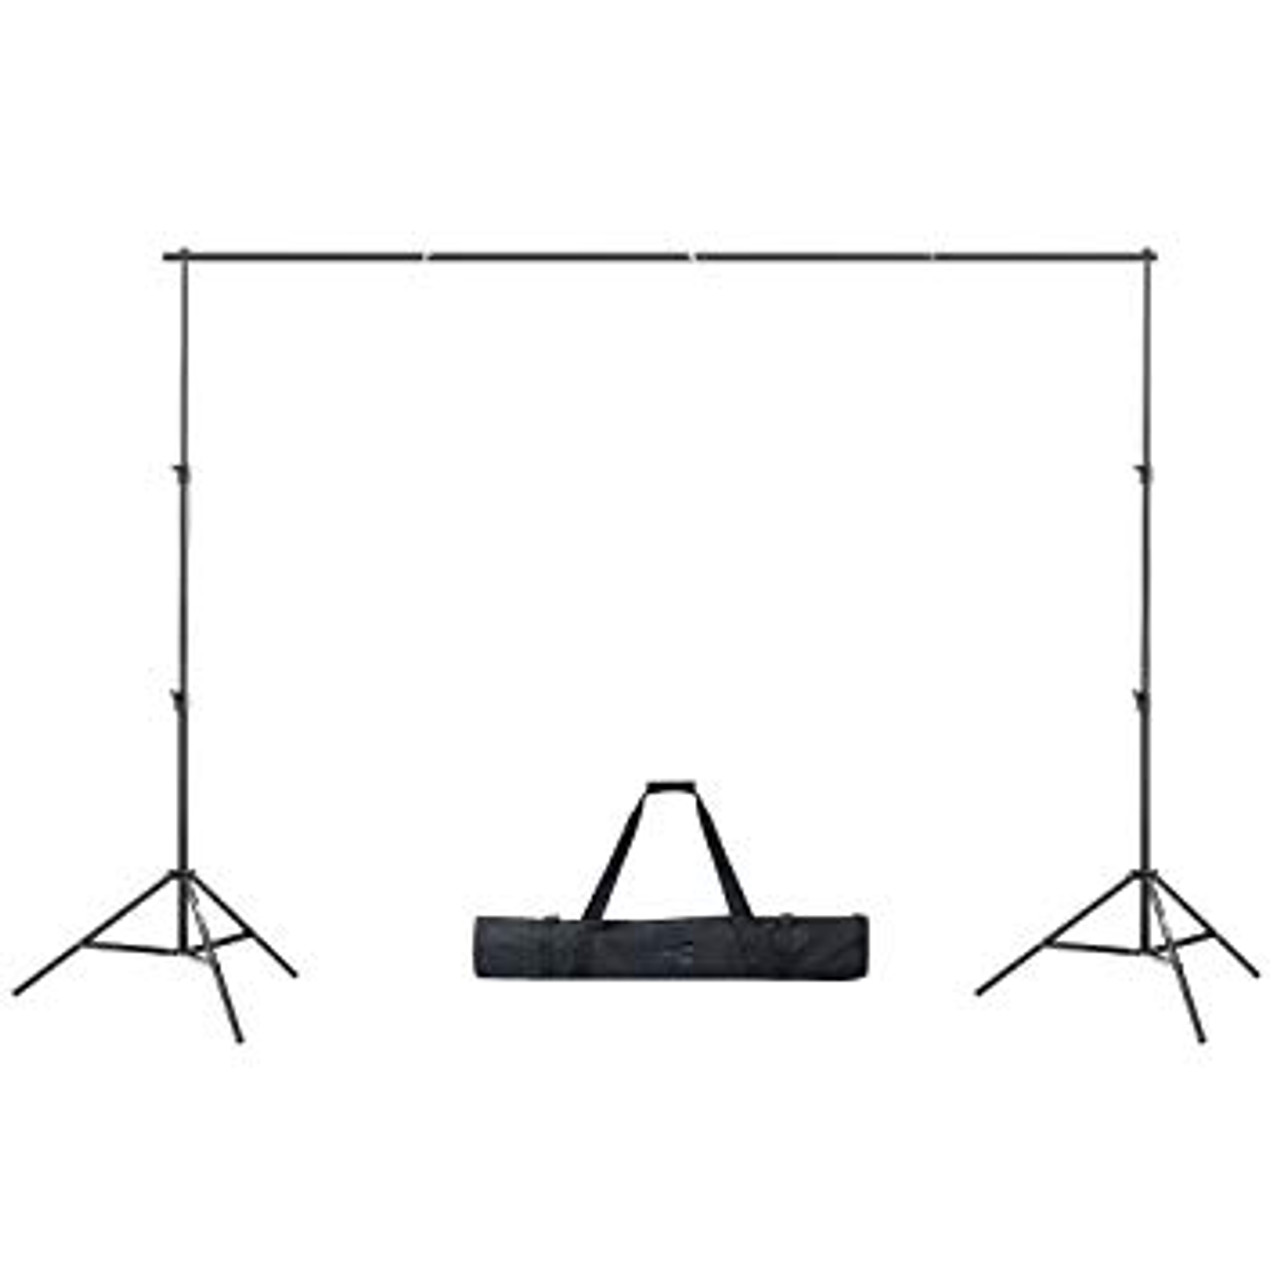 Rental - Portable Background Stand Tripod Base (2 Poles + Crossbar)